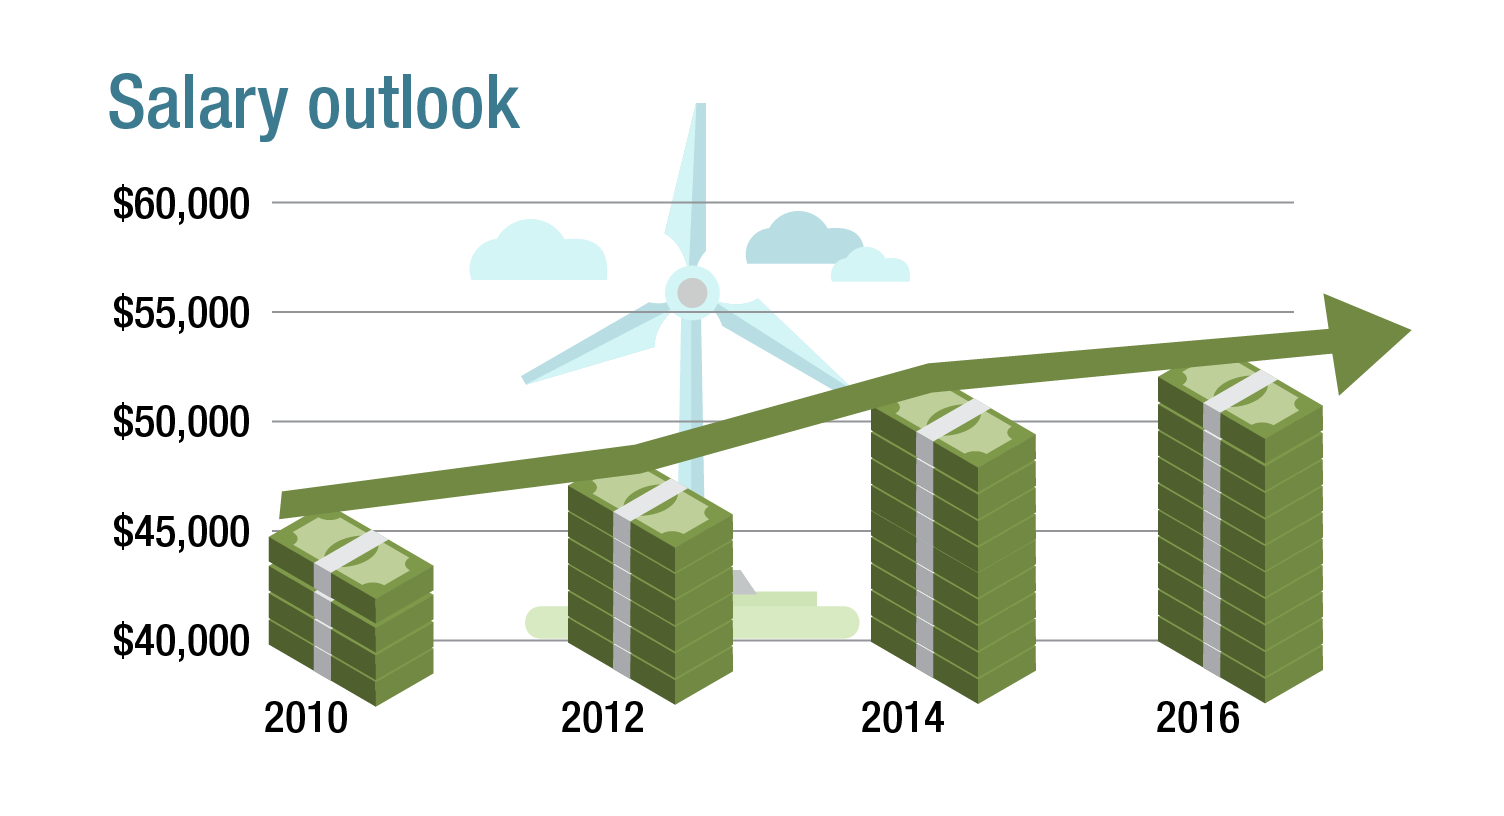 Salary outlook for wind turbine technicians